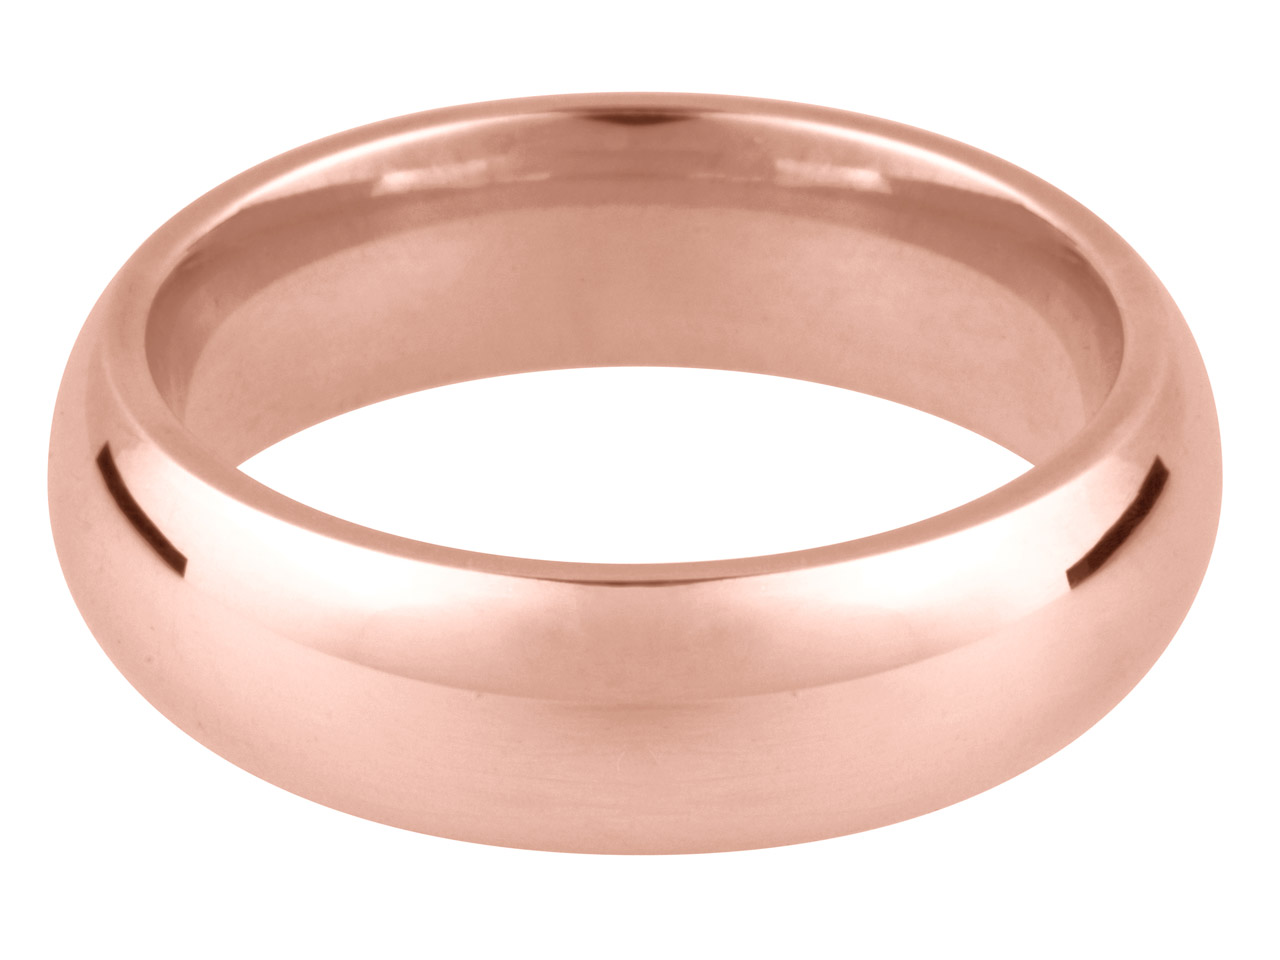 9ct Red Gold Court Wedding Ring    4.0mm, Size U, 4.9g Medium Weight, Hallmarked, Wall Thickness 1.89mm, 100% Recycled Gold